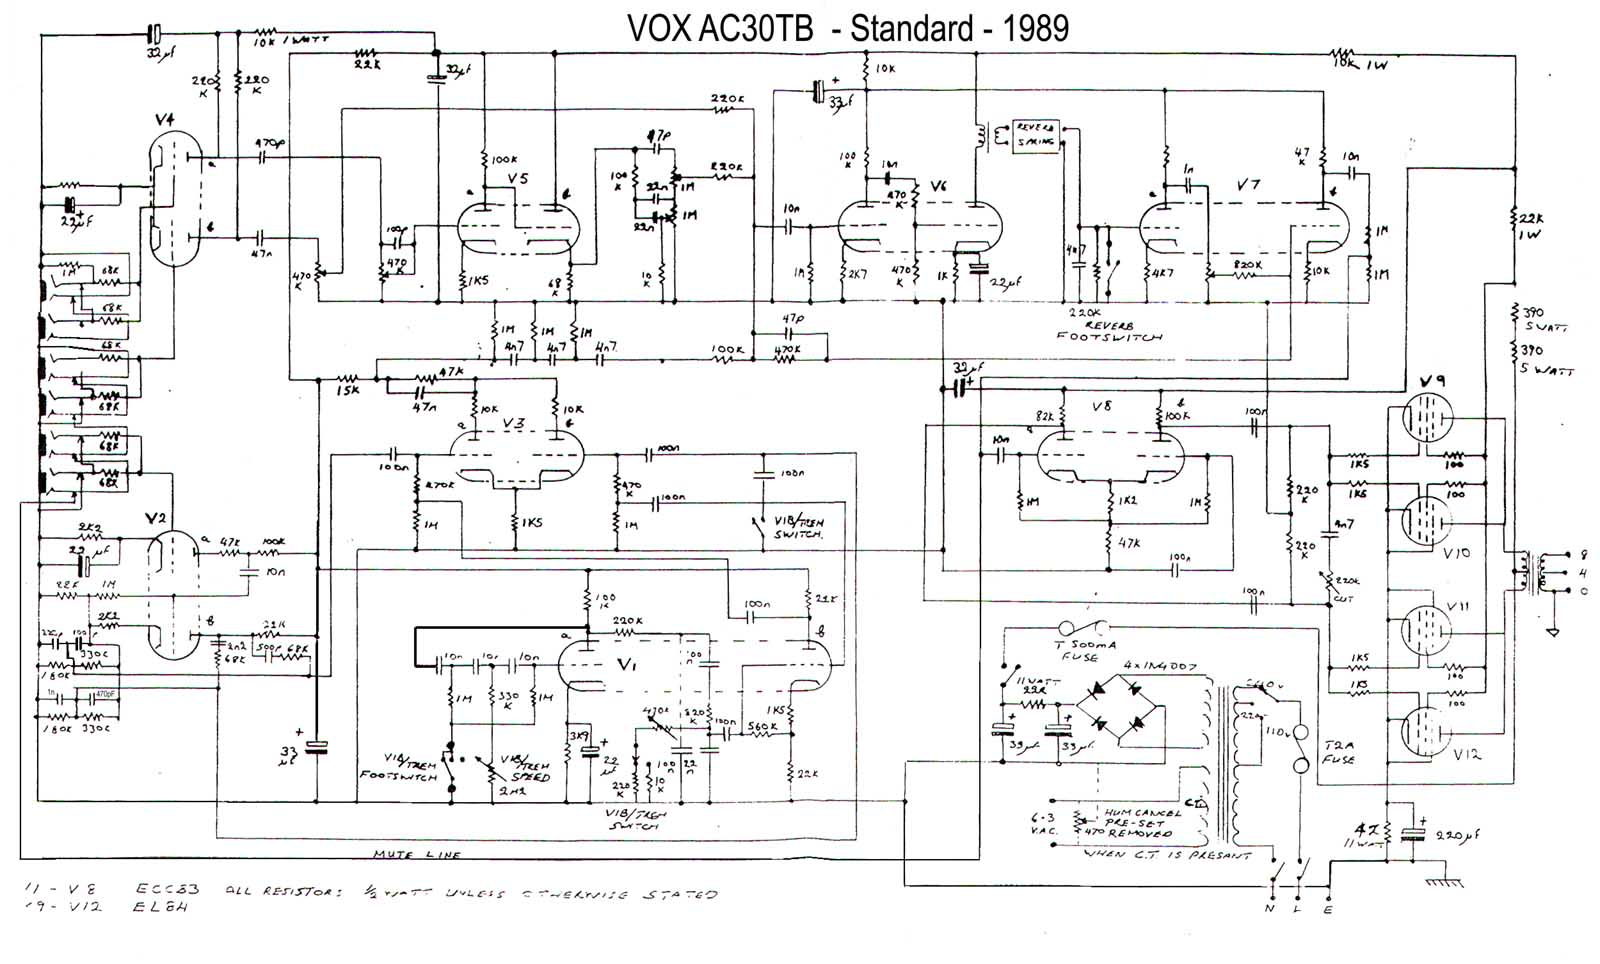 ac301989 Ac Schematic on old vox, diy vox, vs dc30, vox amplug 2, ac15 vs, best tubes for vox, best settings for vox,